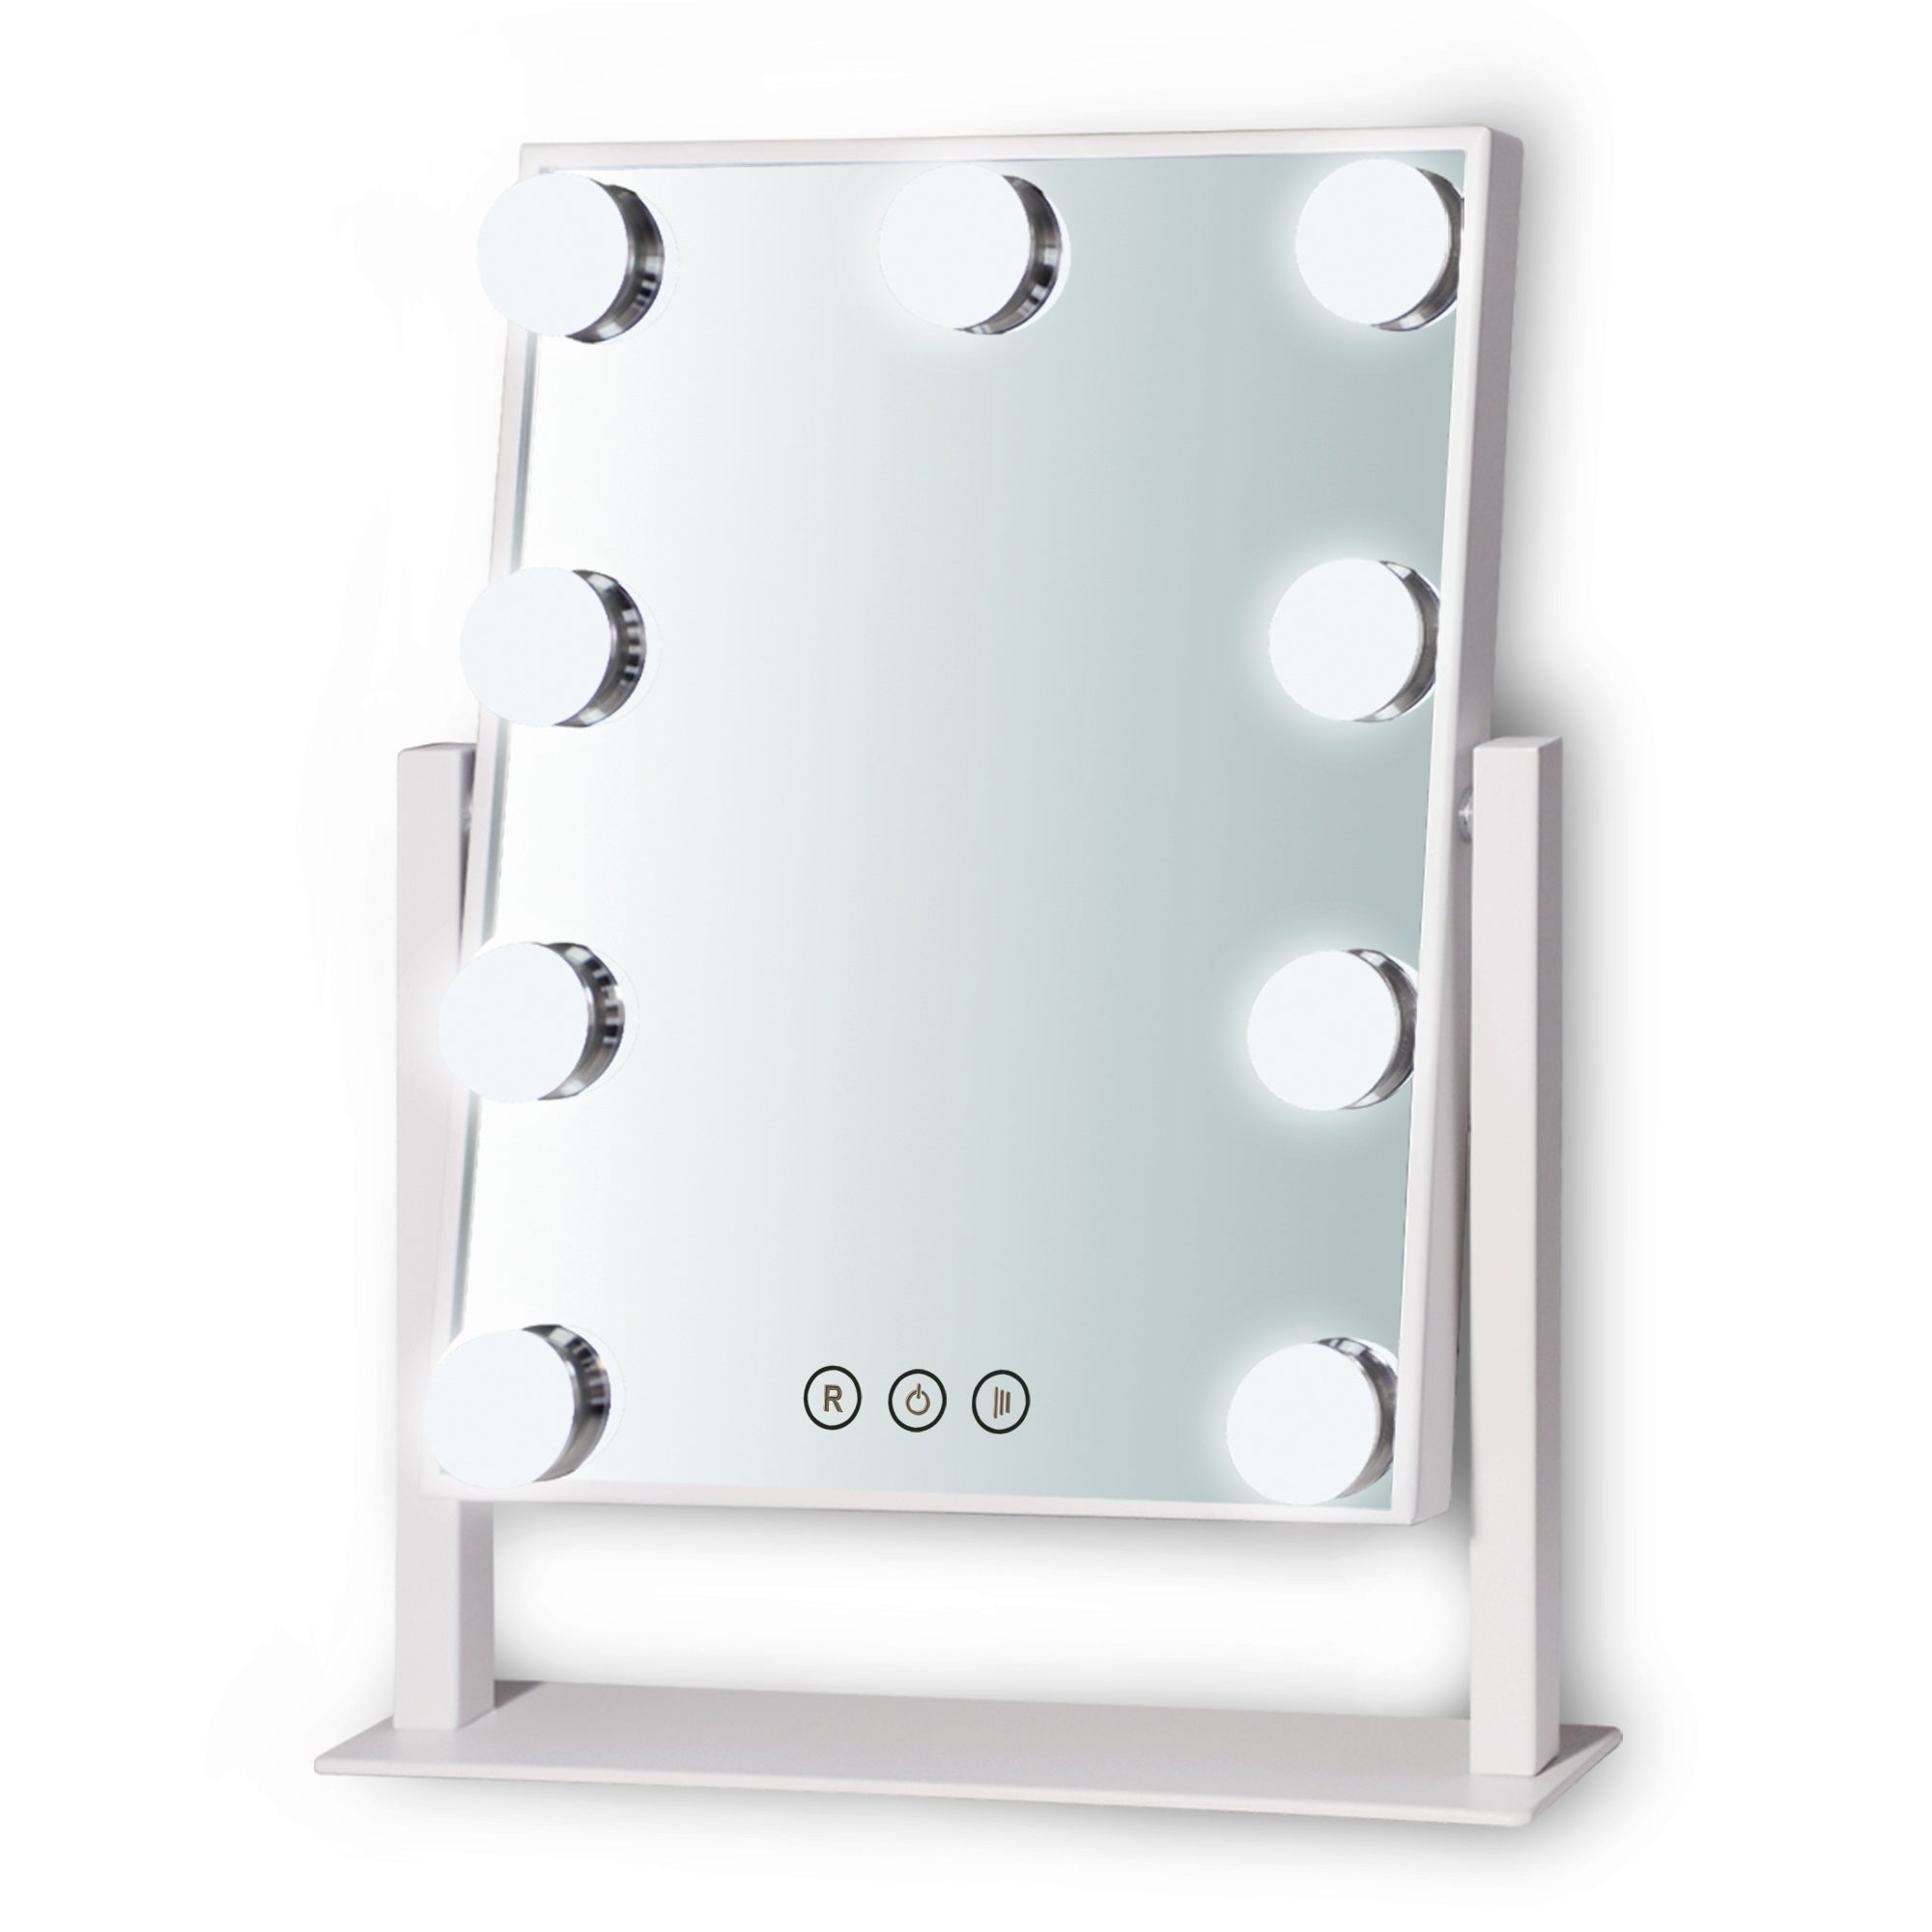 Bsle Makeup Vanity Mirror With Touch Screen 3 Color Lighting Mode Overstock 30717066